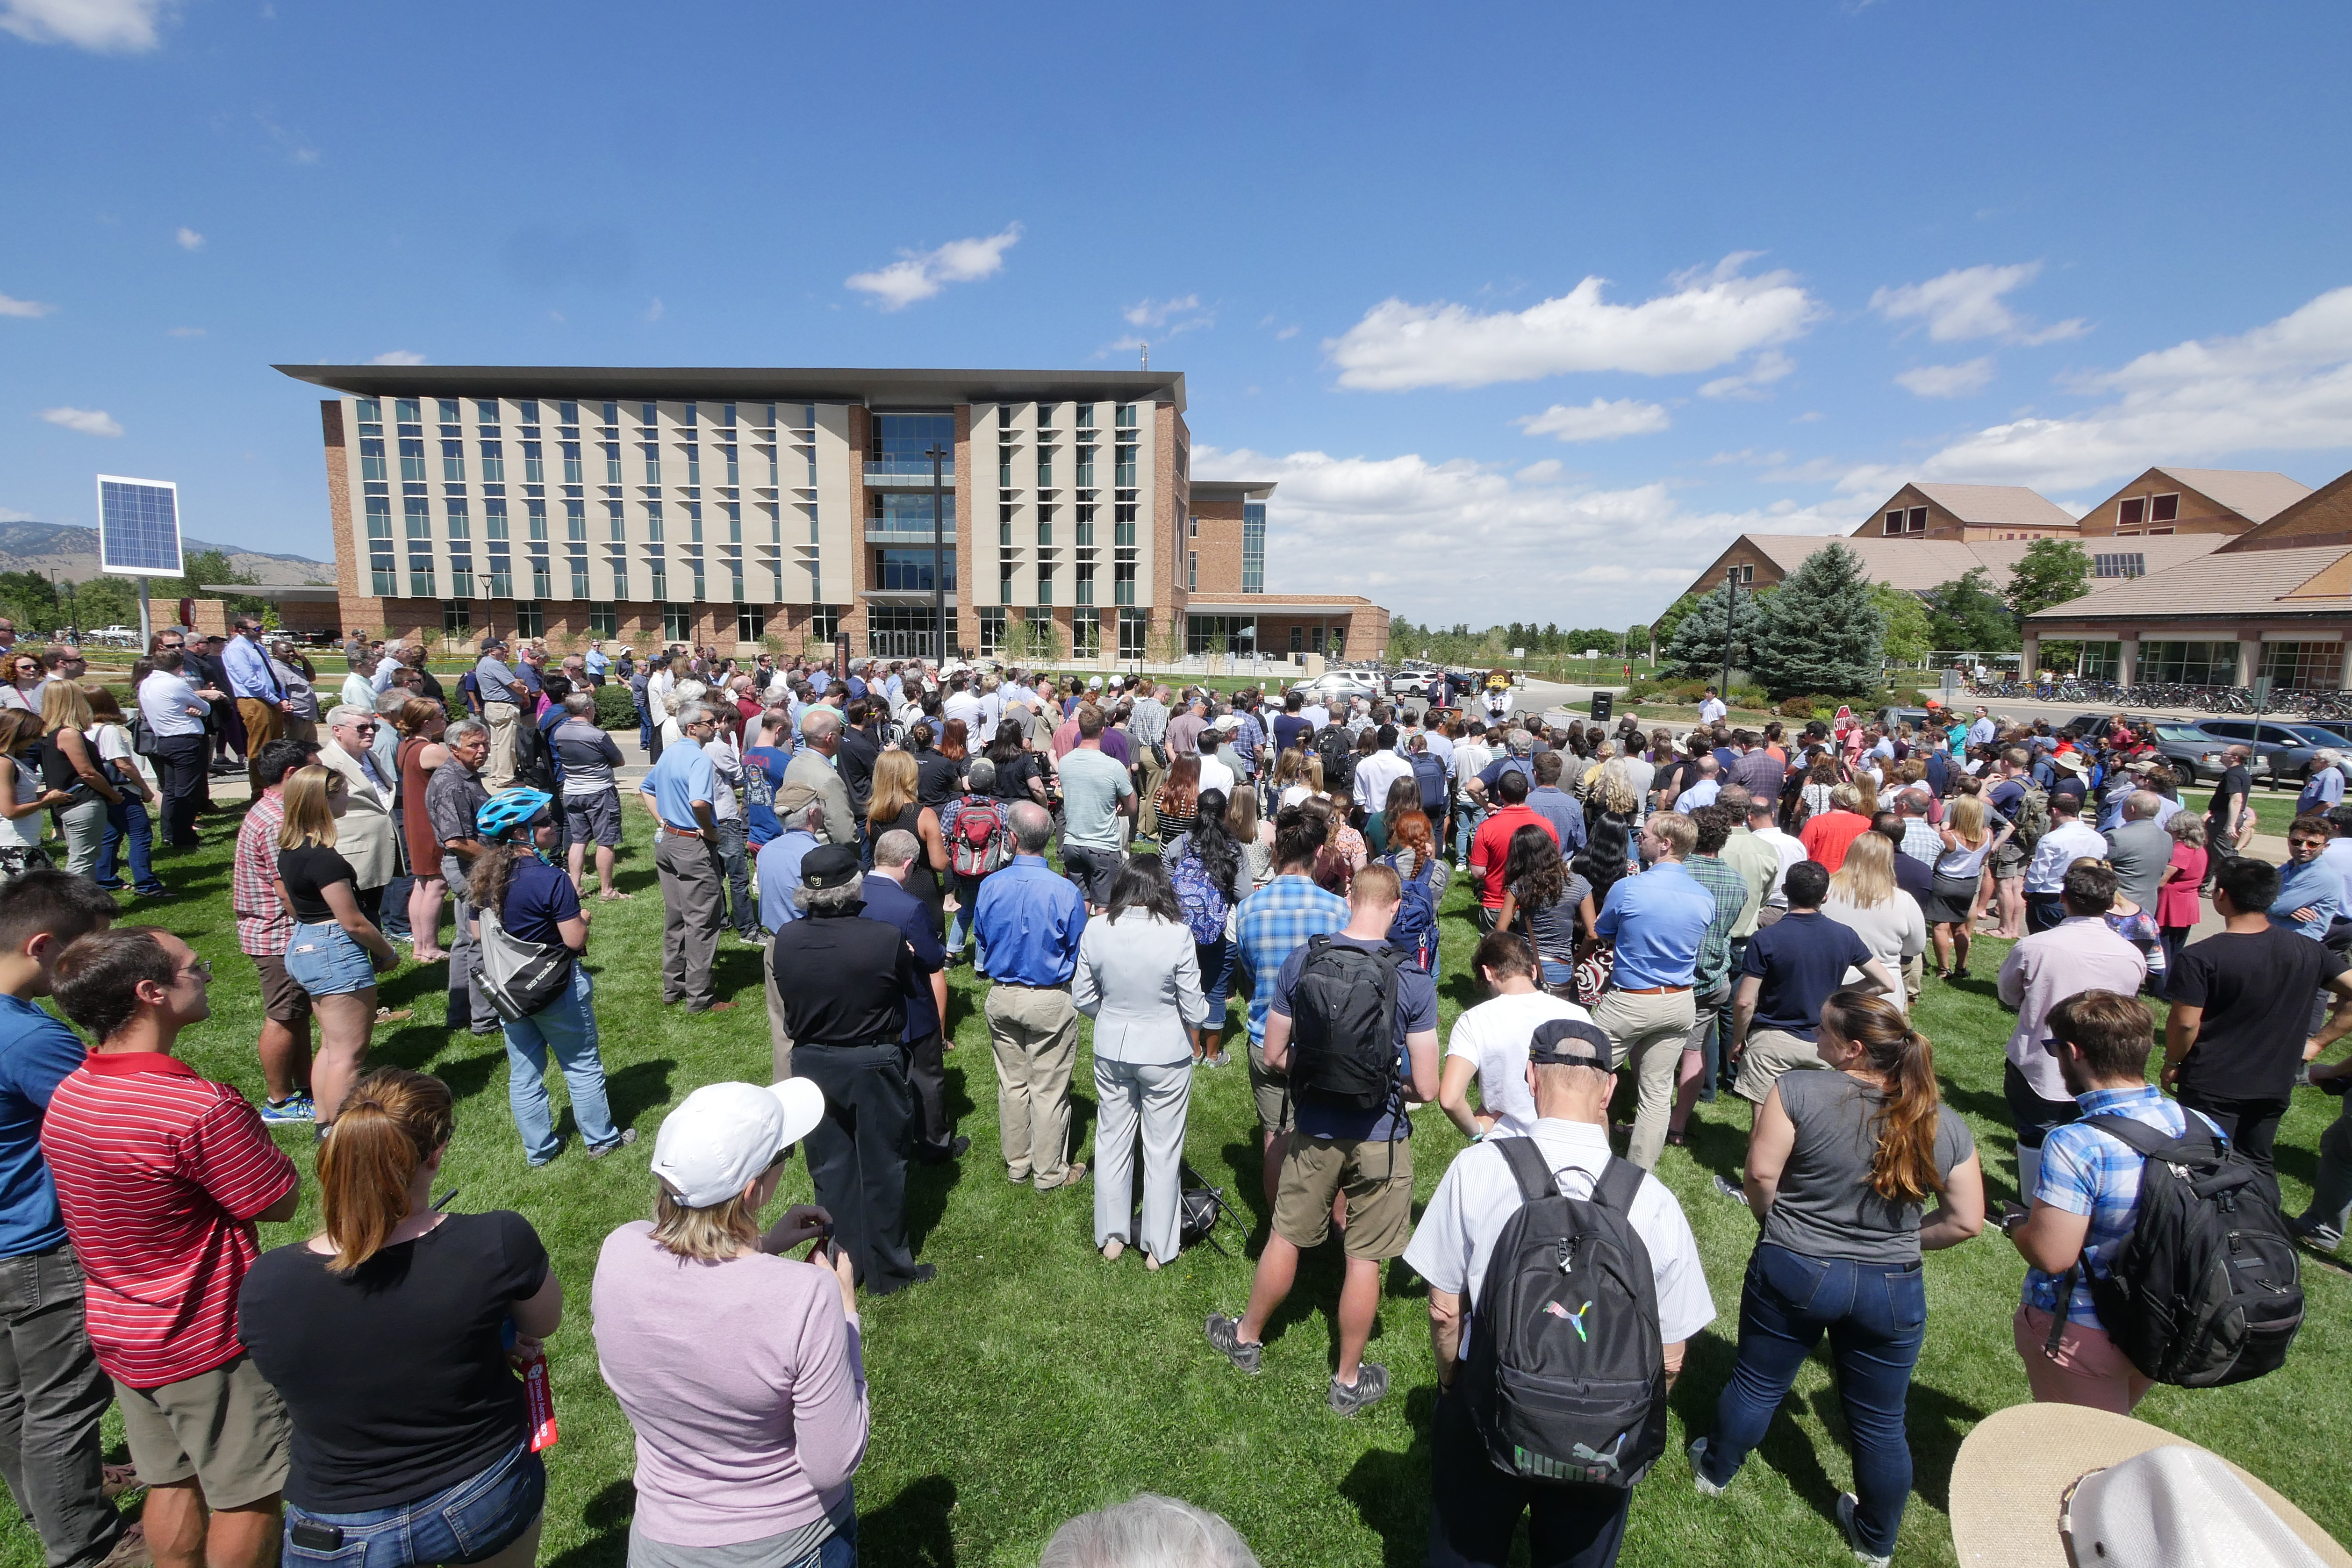 Grand opening, Aerospace Engineering Sciences building at CU Boulder